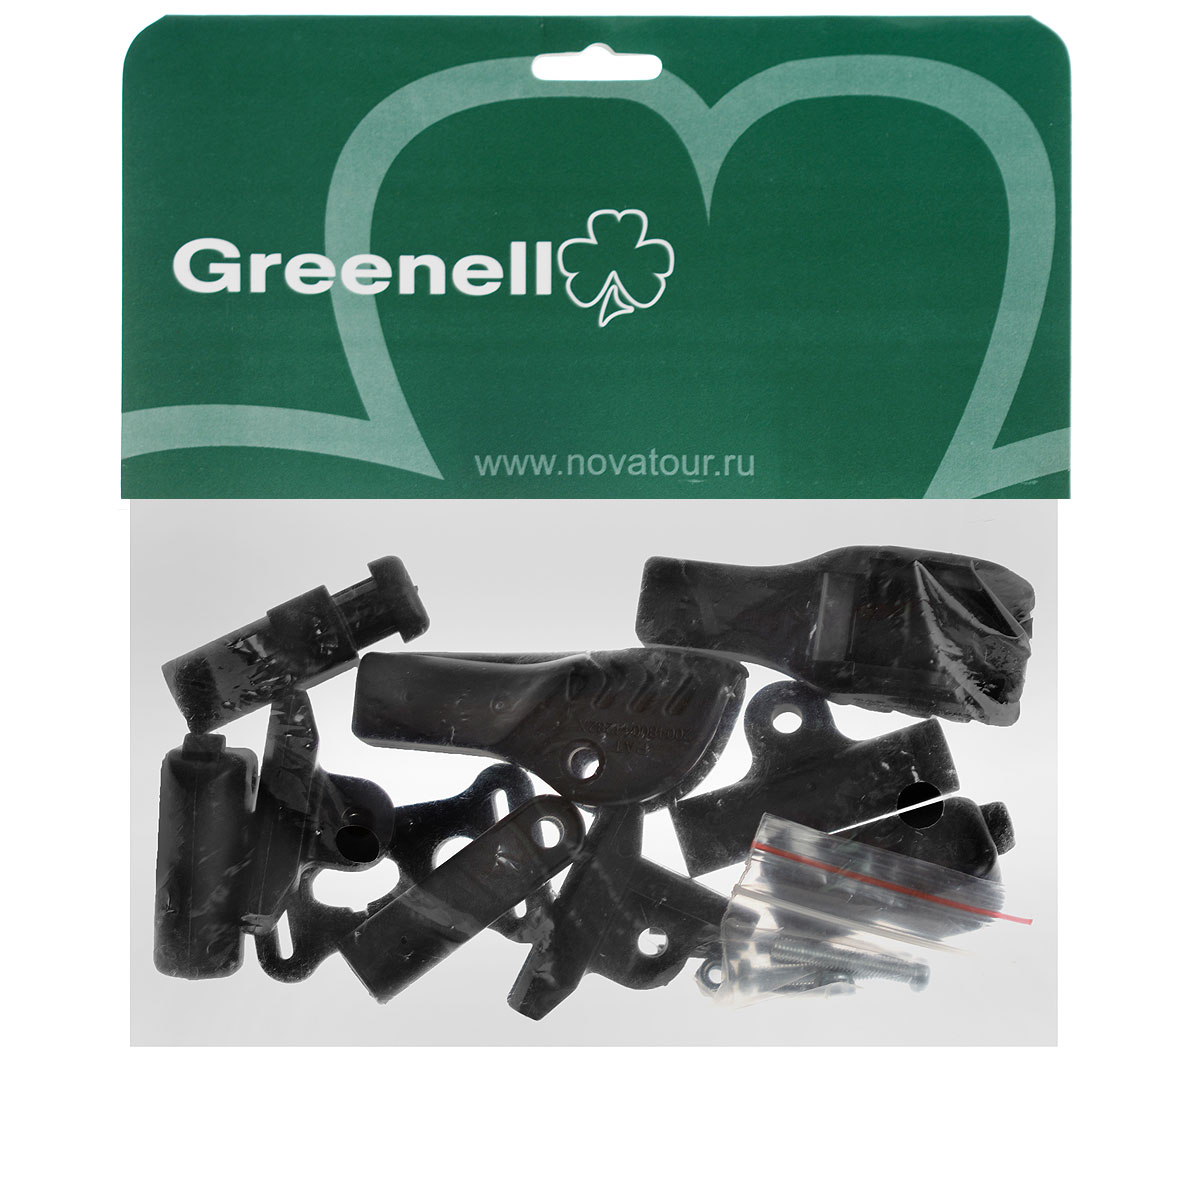 Ремкомплект Greenell №1, для палаток: Aughris 2, Castlerea 4, Clare 3, Dingle 3, Dingle light 3, Howth 4, Larne 2, Private, Tralee 2, Tralee 3